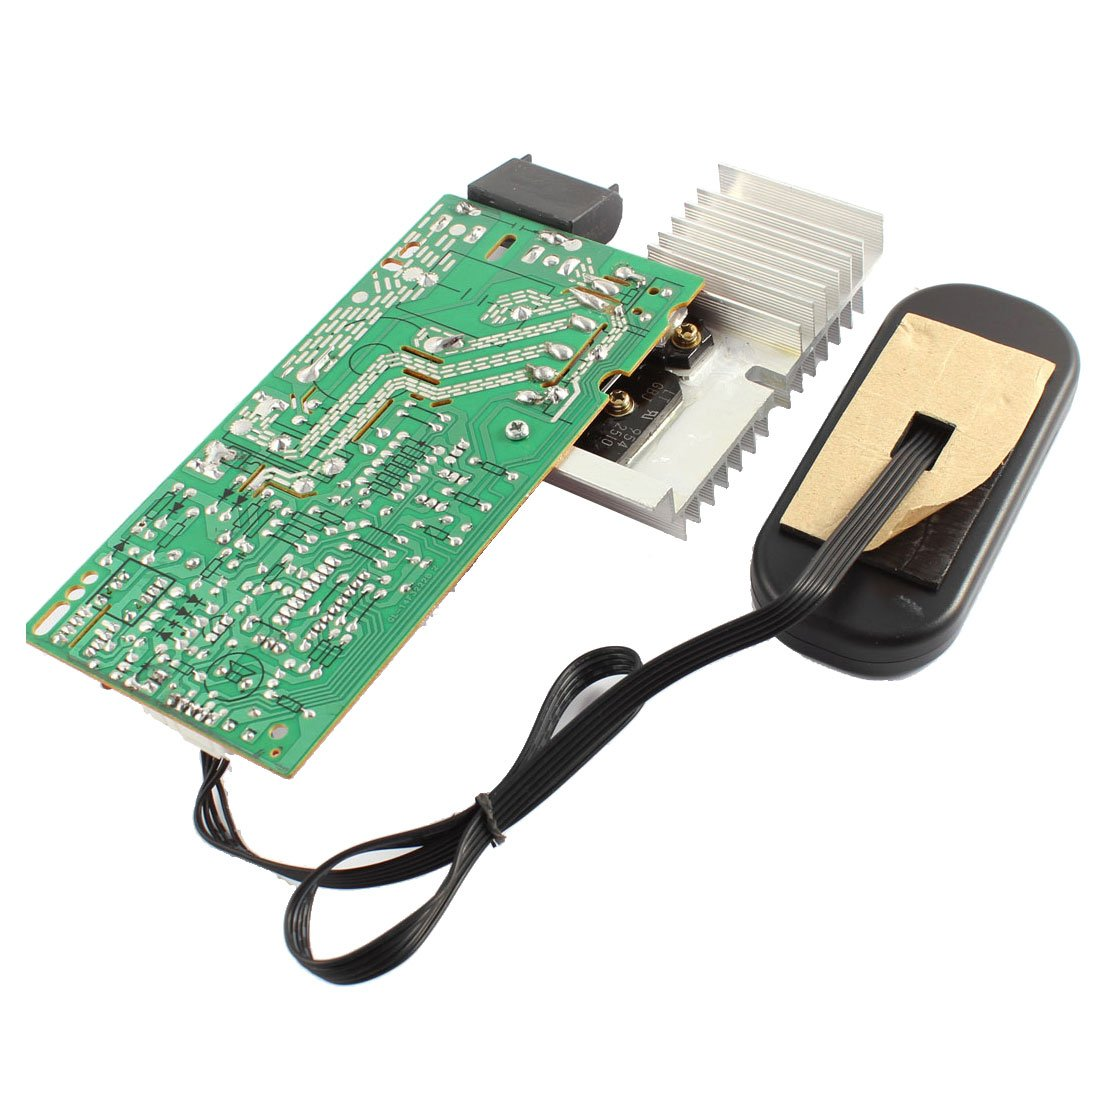 Buy Pcb Circuit Induction Cooker Controller Repair Replacement Part Professional Making Air Conditioning Power Board Printed Online At Low Prices In India